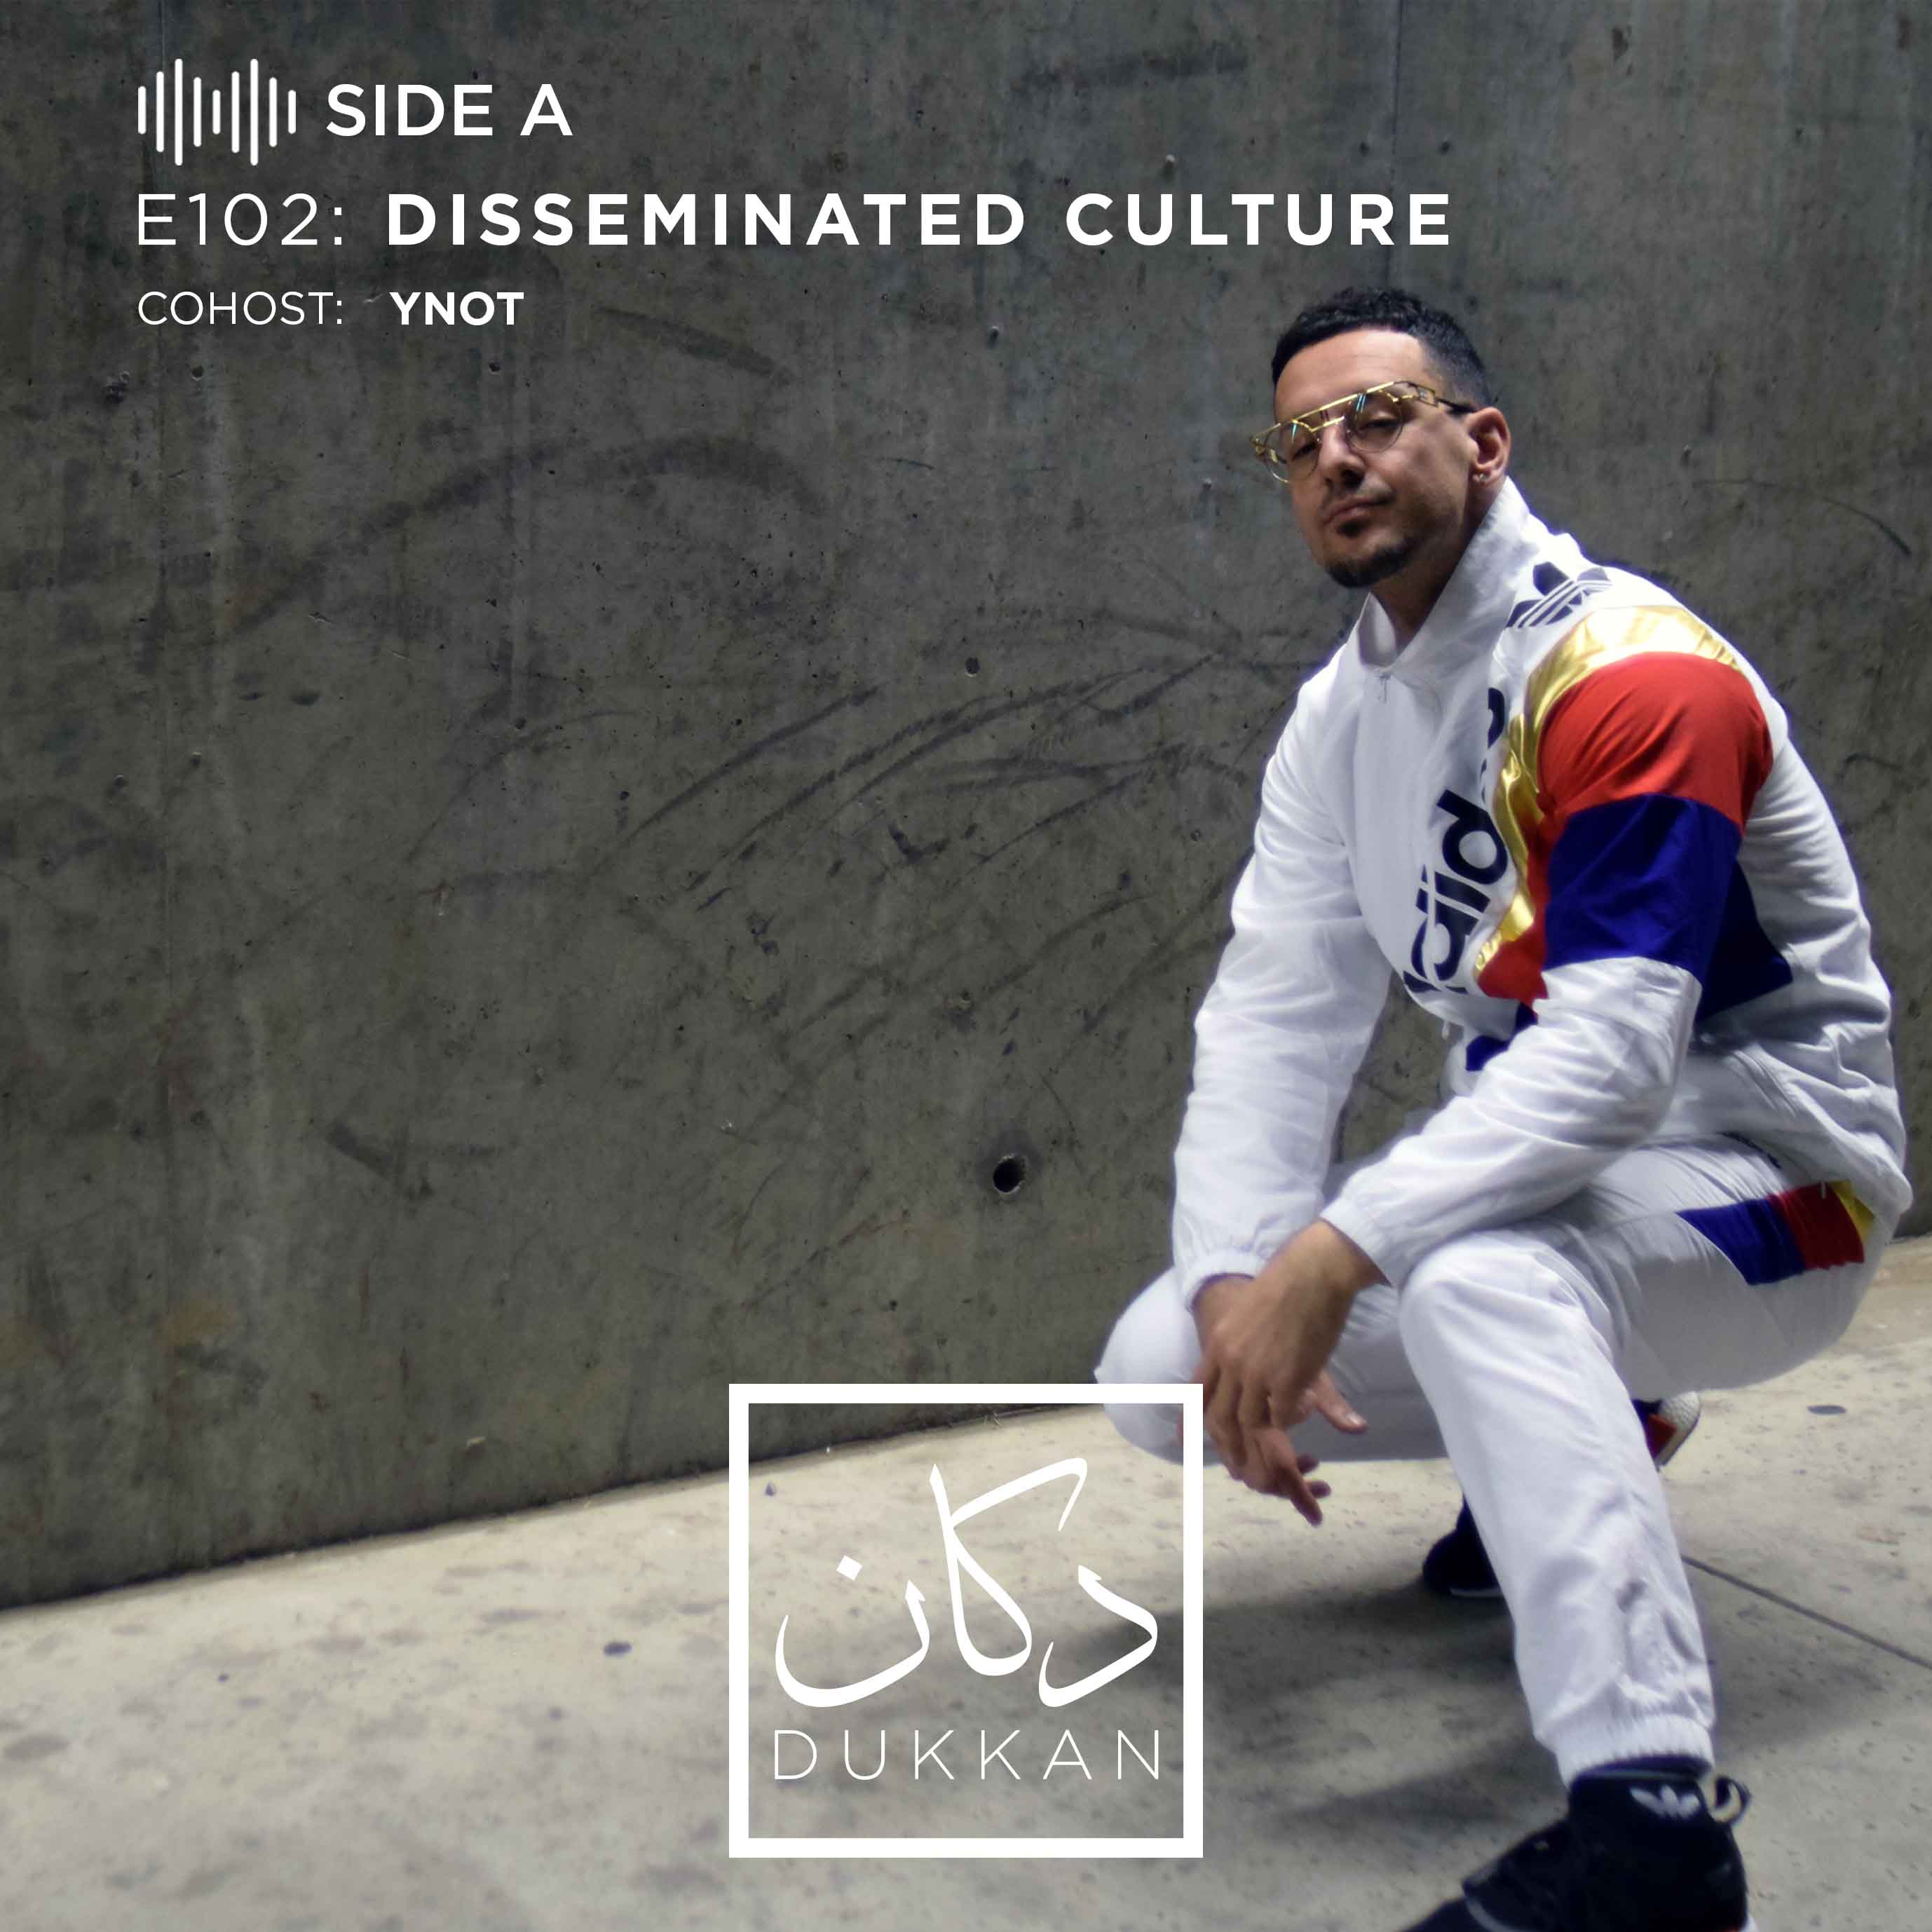 E102 - Side A: Disseminated Culture (Cohost: Ynot)